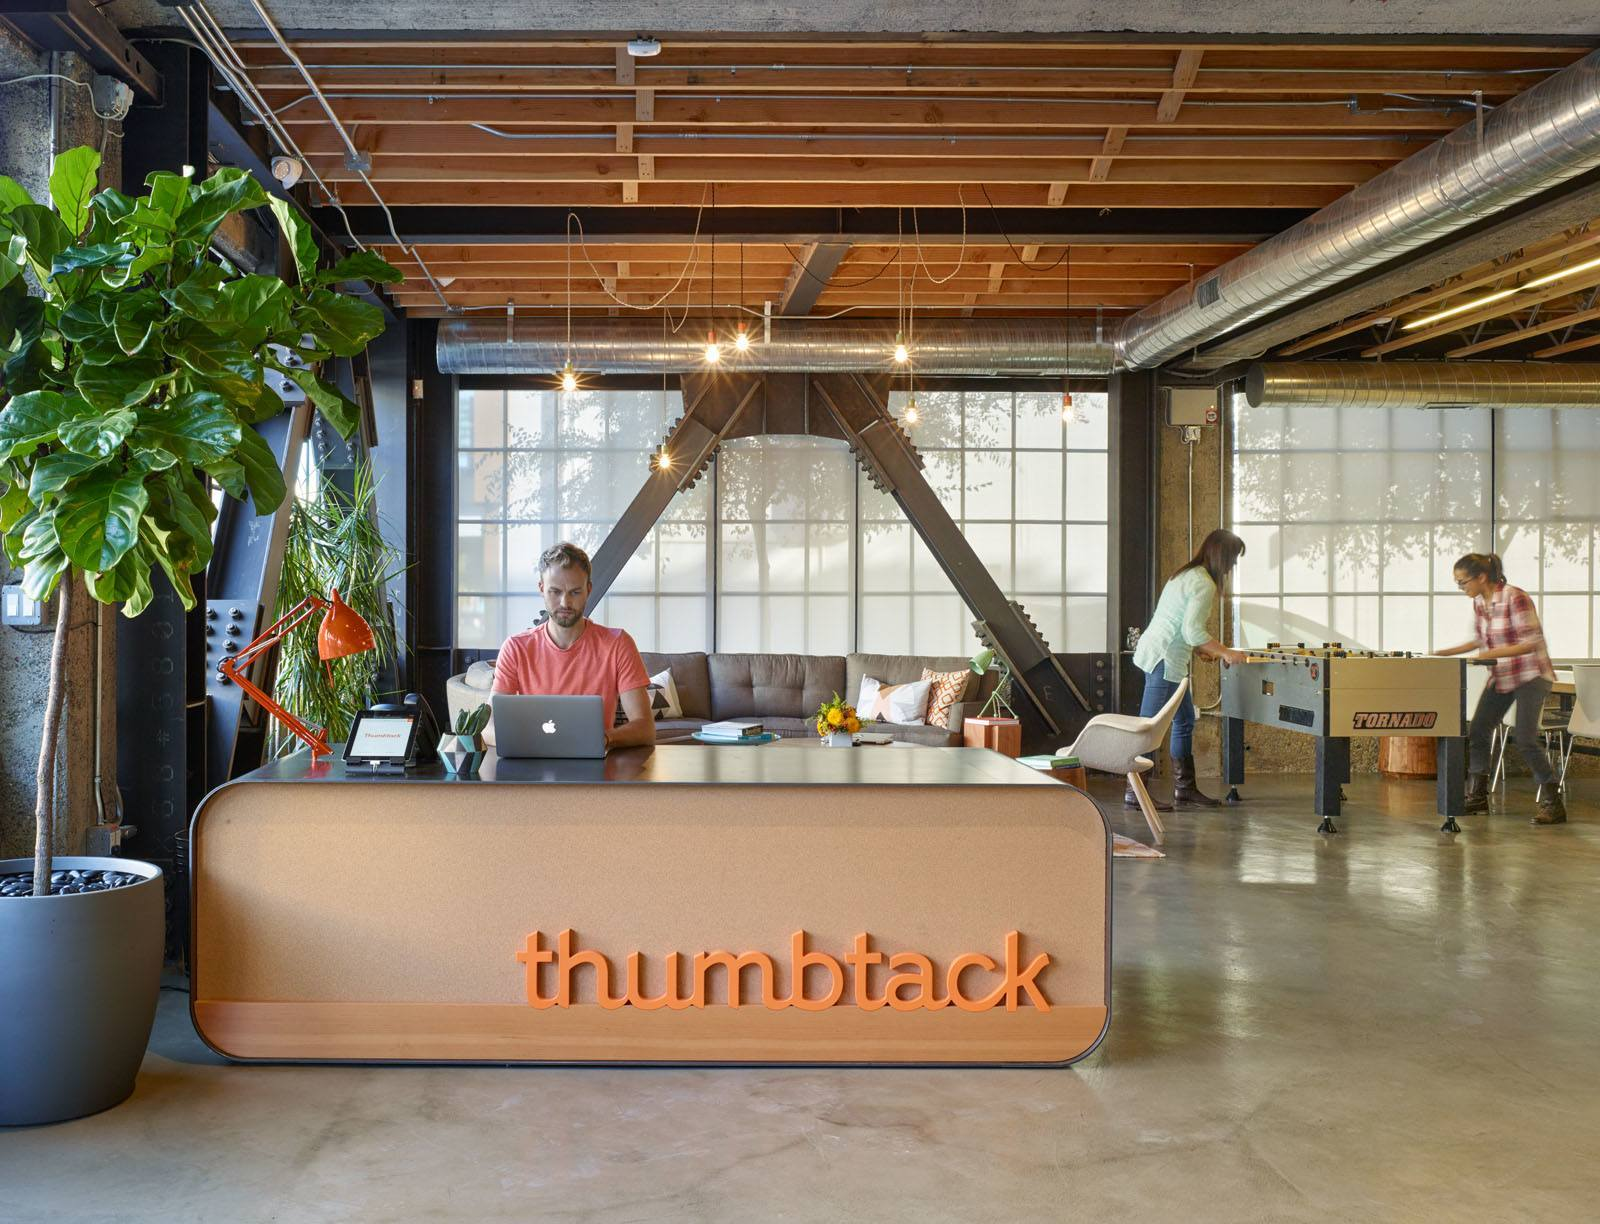 Thumbtack headquarters